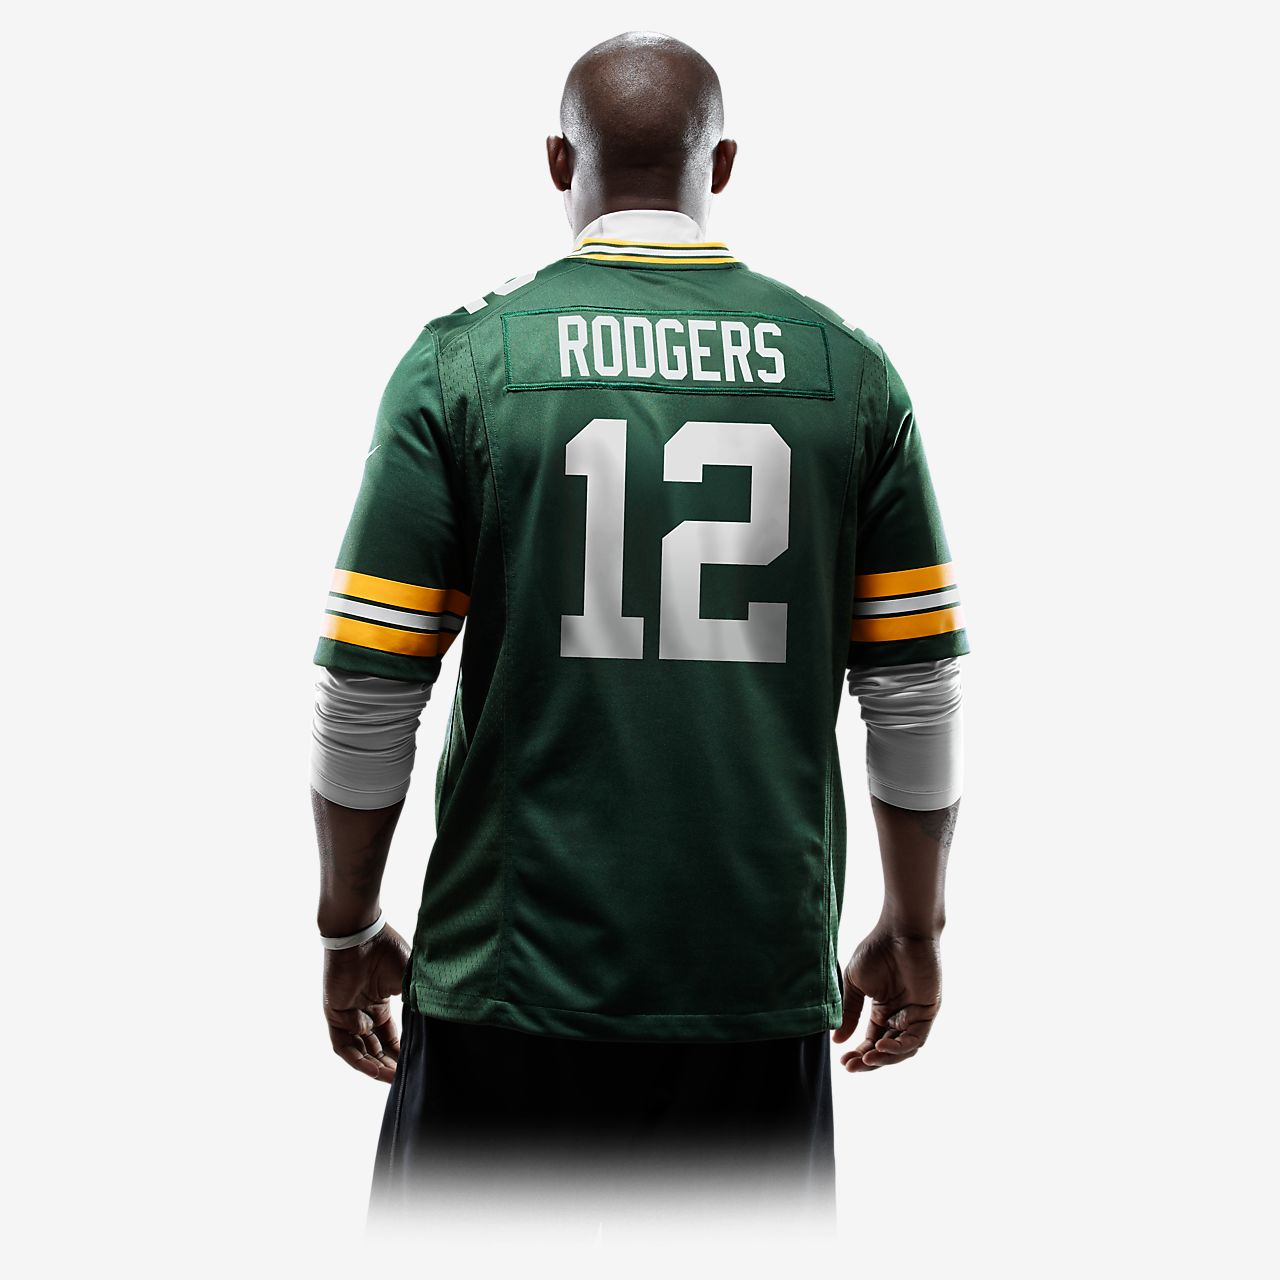 19a0b8740 ... NFL Green Bay Packers (Aaron Rodgers) Men s Football Home Game Jersey